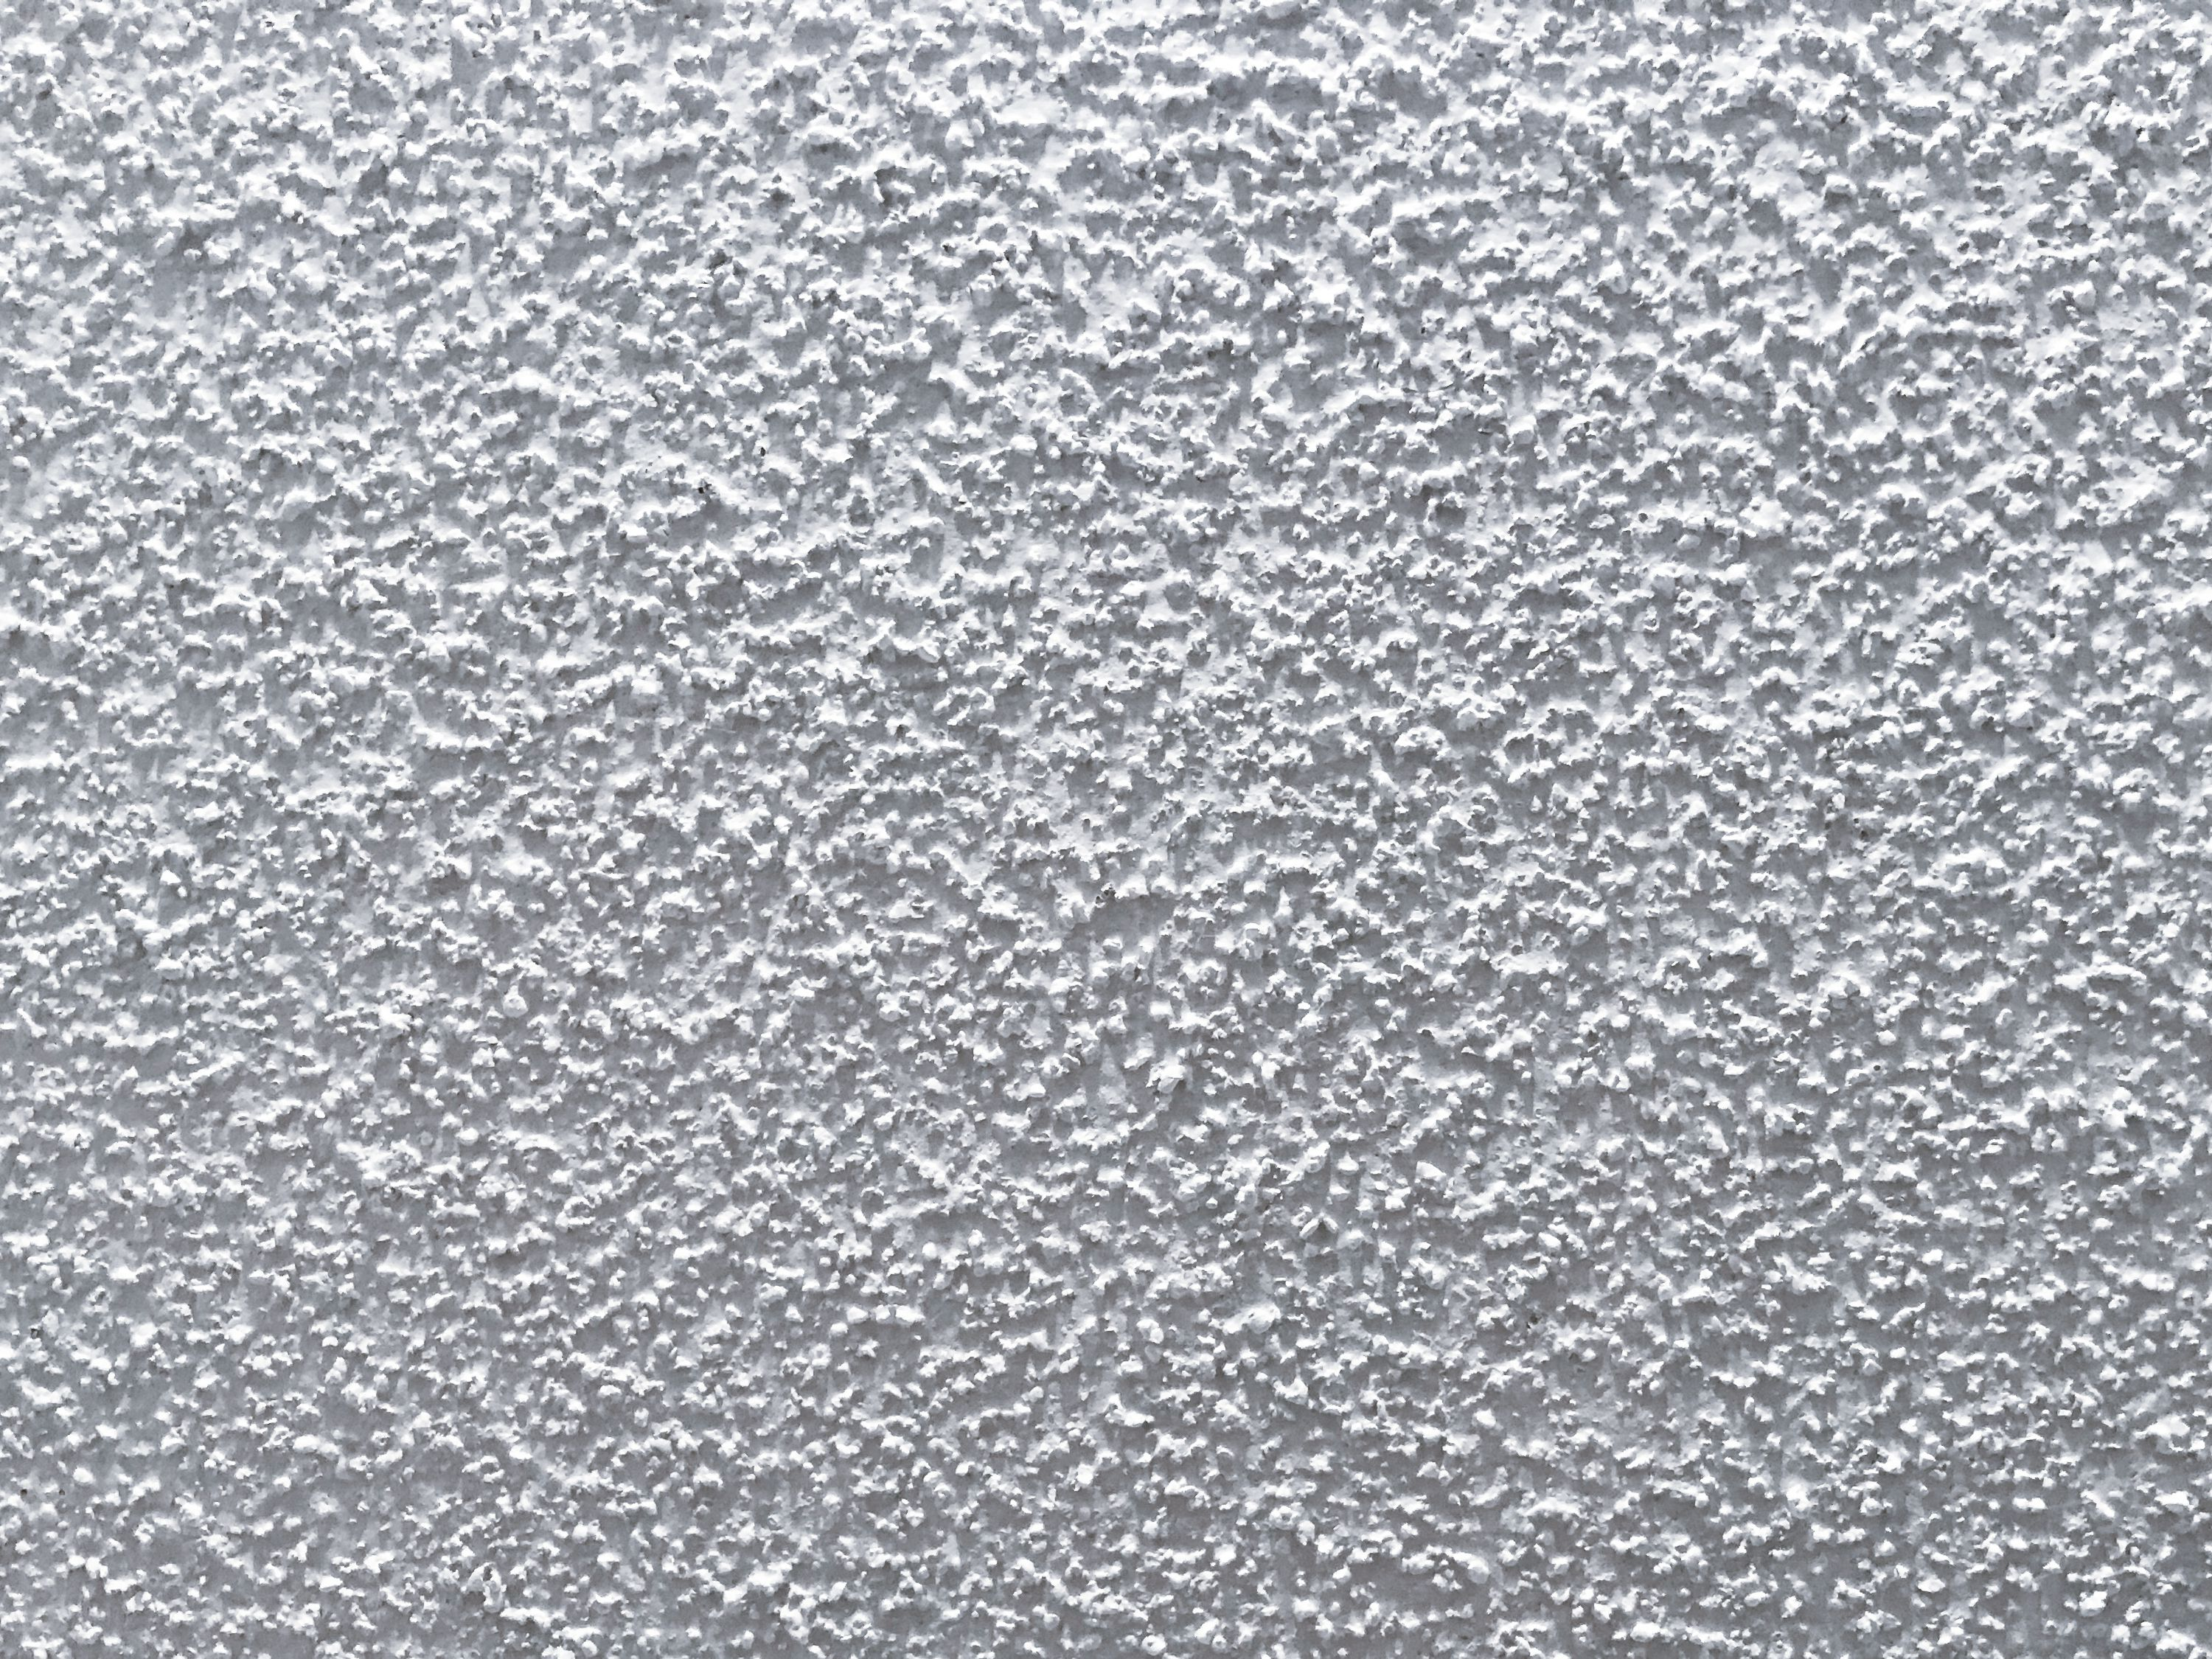 How To Clean A Popcorn Ceiling